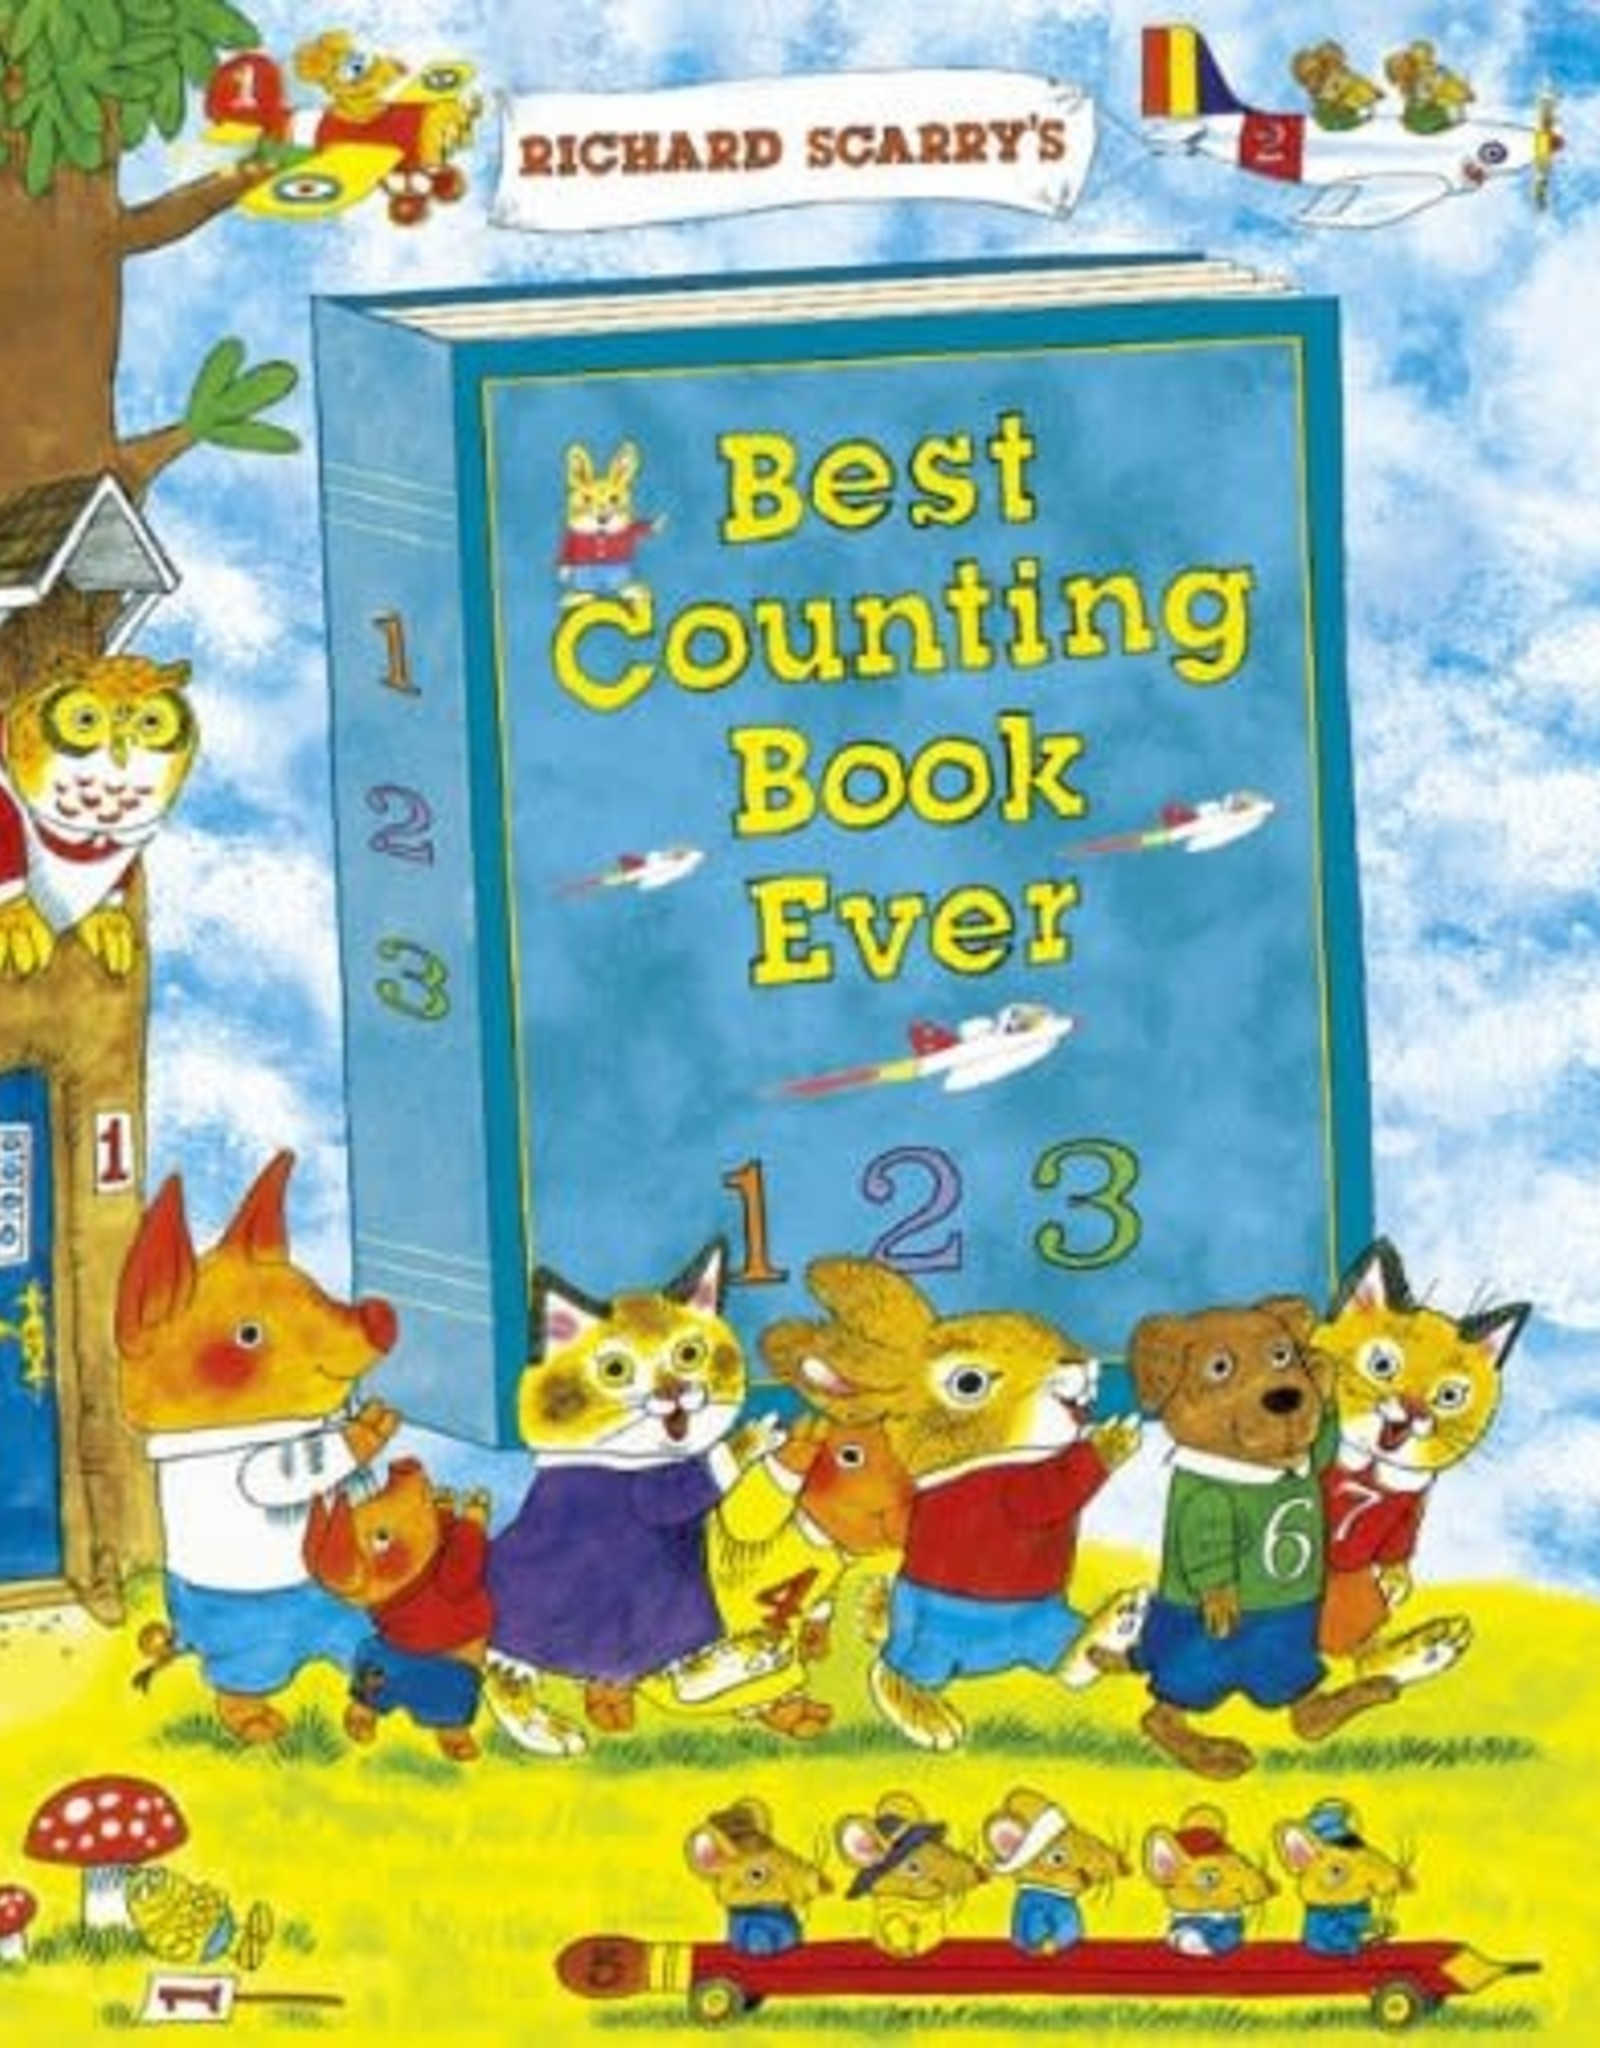 Richard Scarry Best Counting Book Ever by Richard Scarry